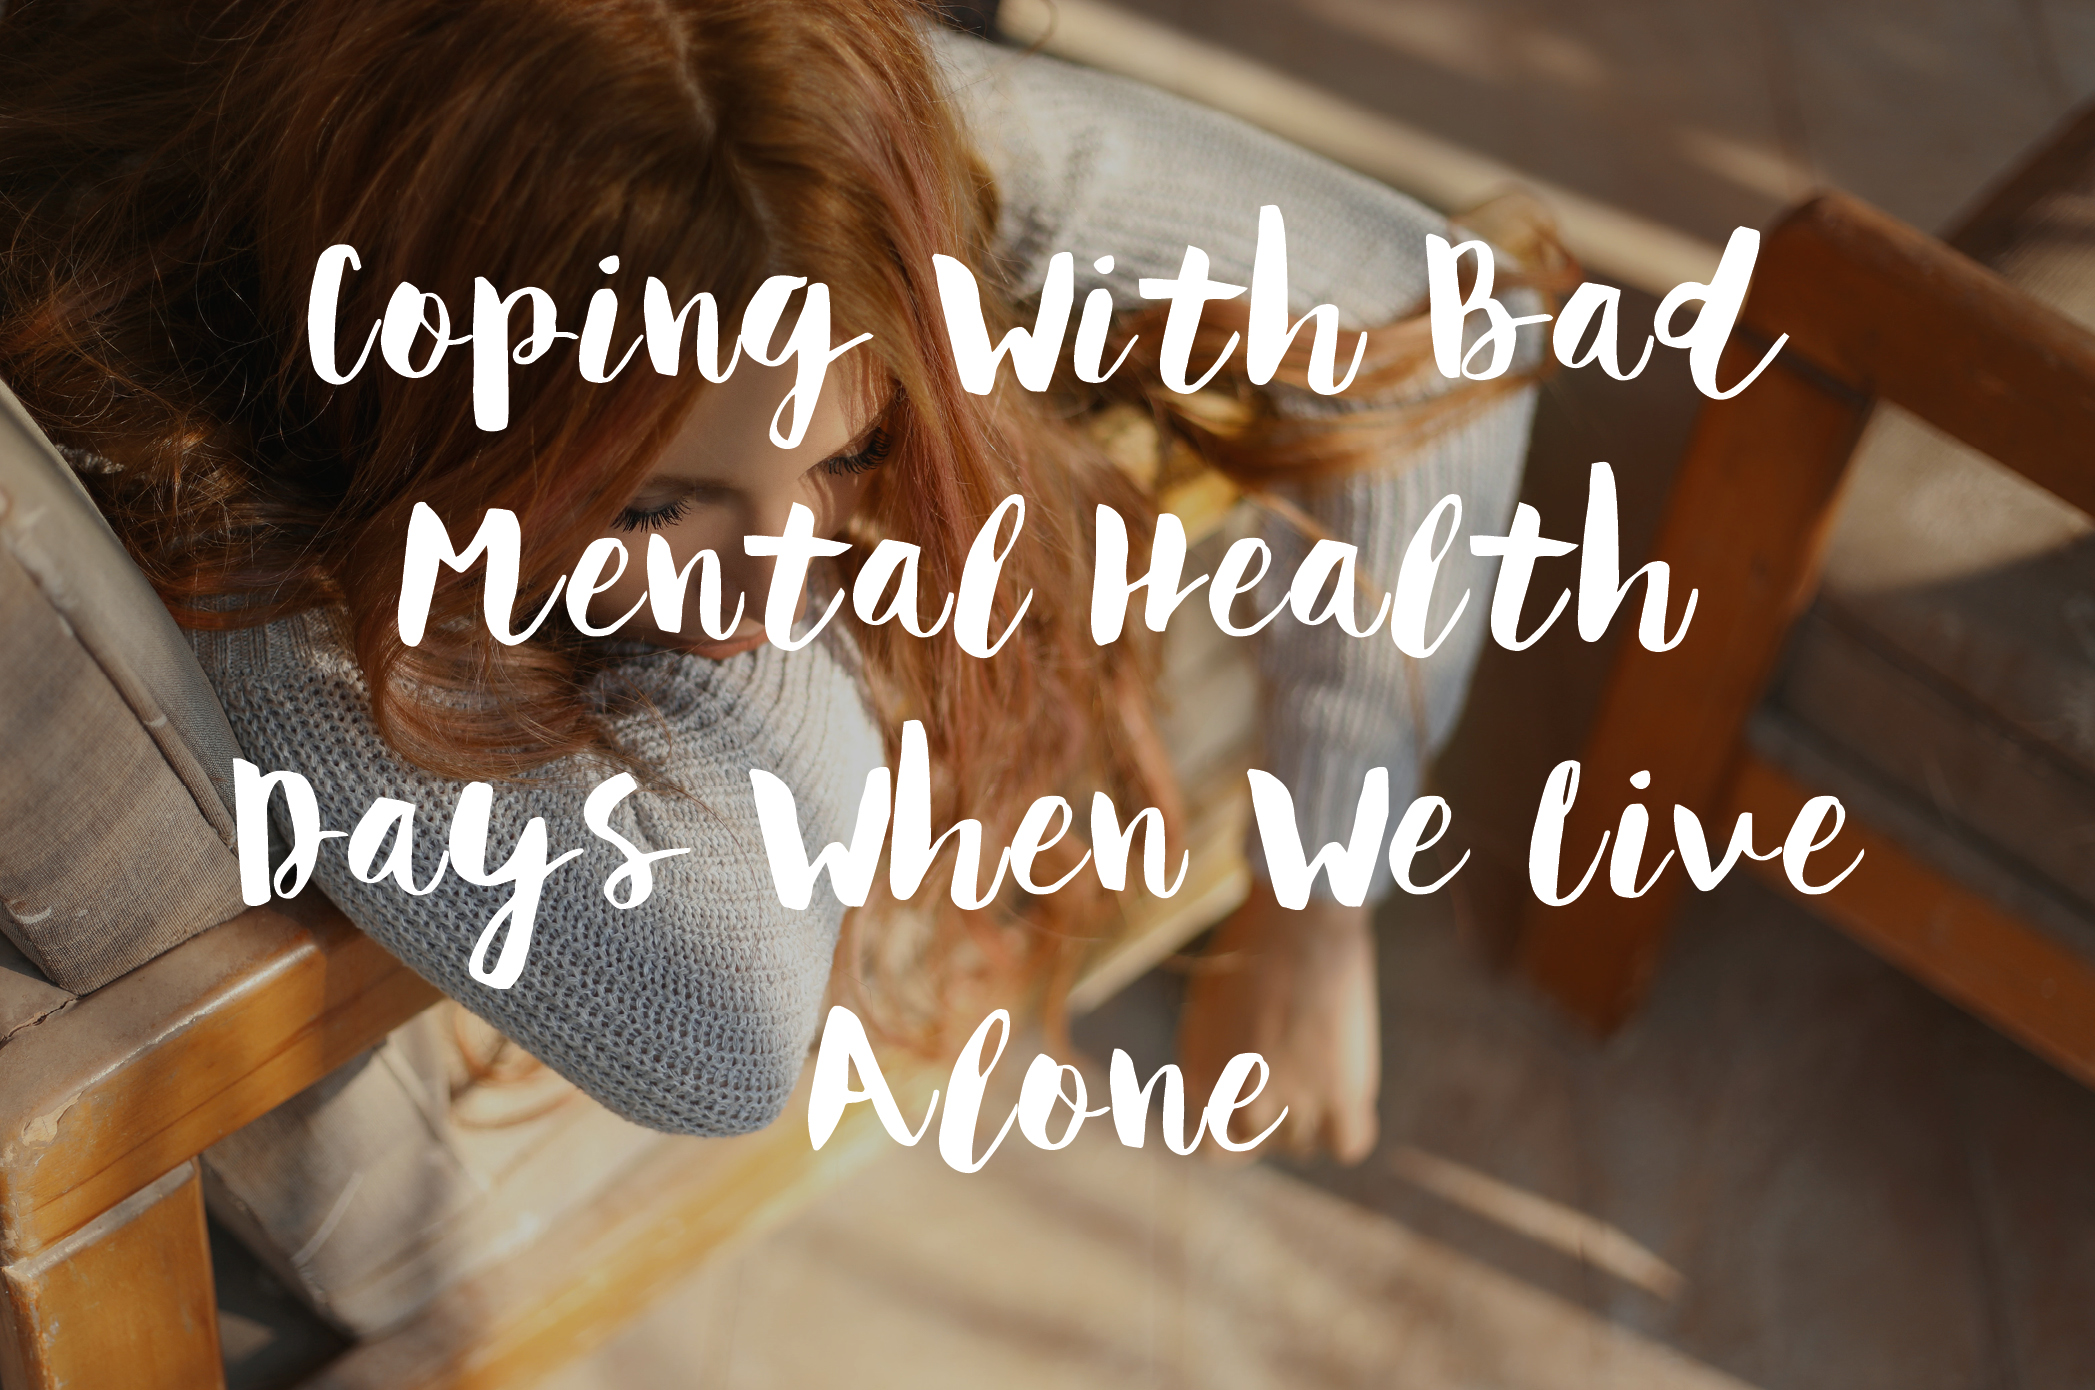 Coping With Bad Mental Health Days When We Live Alone